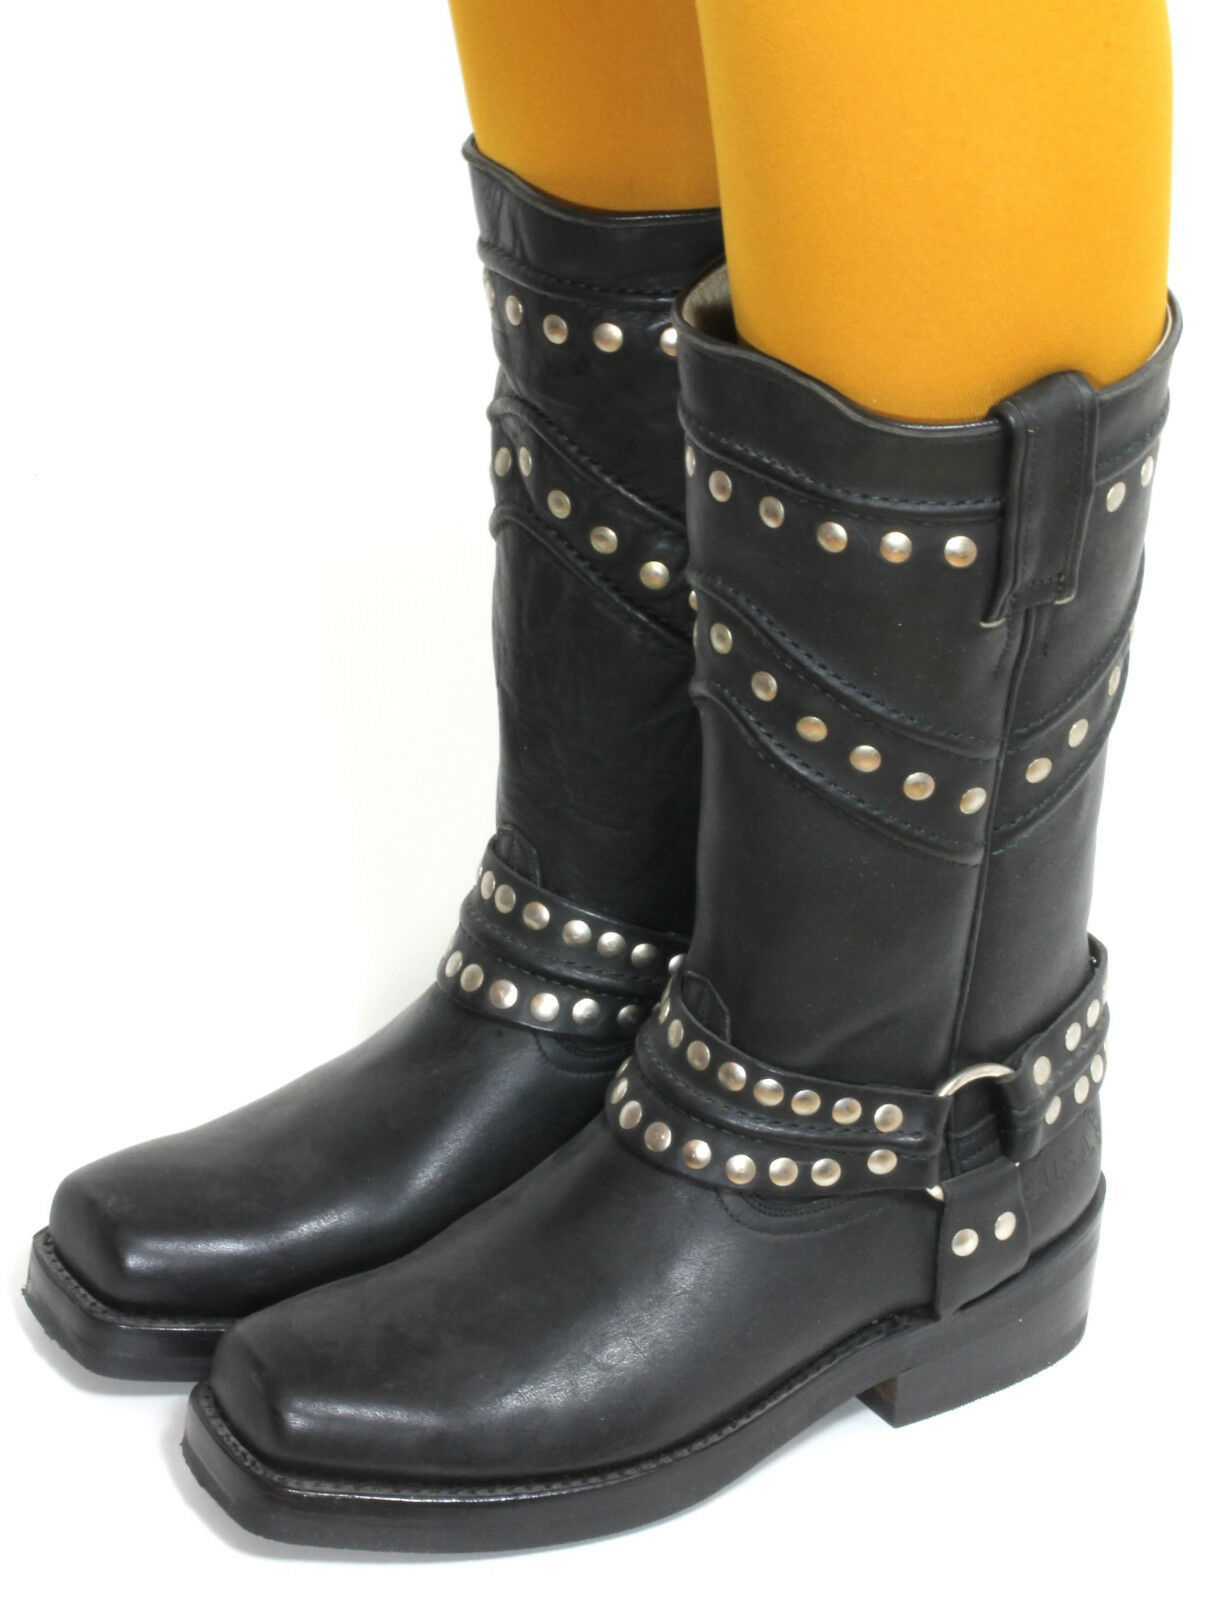 18 Fashion Bikerstiefel Motorradstiefel Chopper Cruiser Stiefel Fashion 18 Jaca 37 2a8093